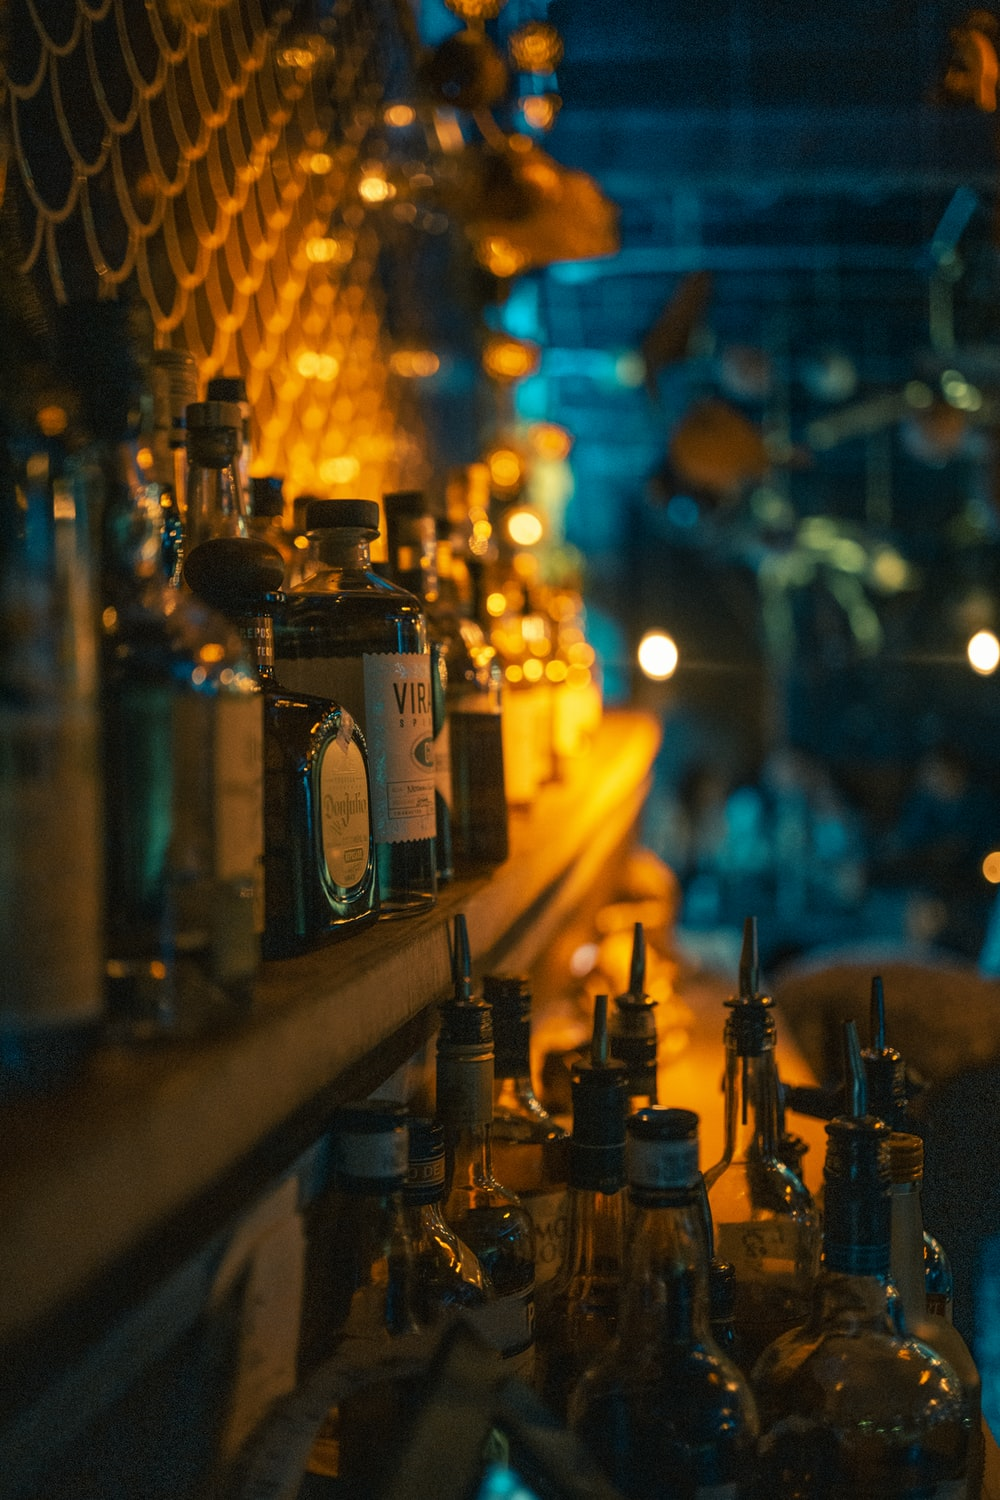 selective focus photography of glass bottles on table